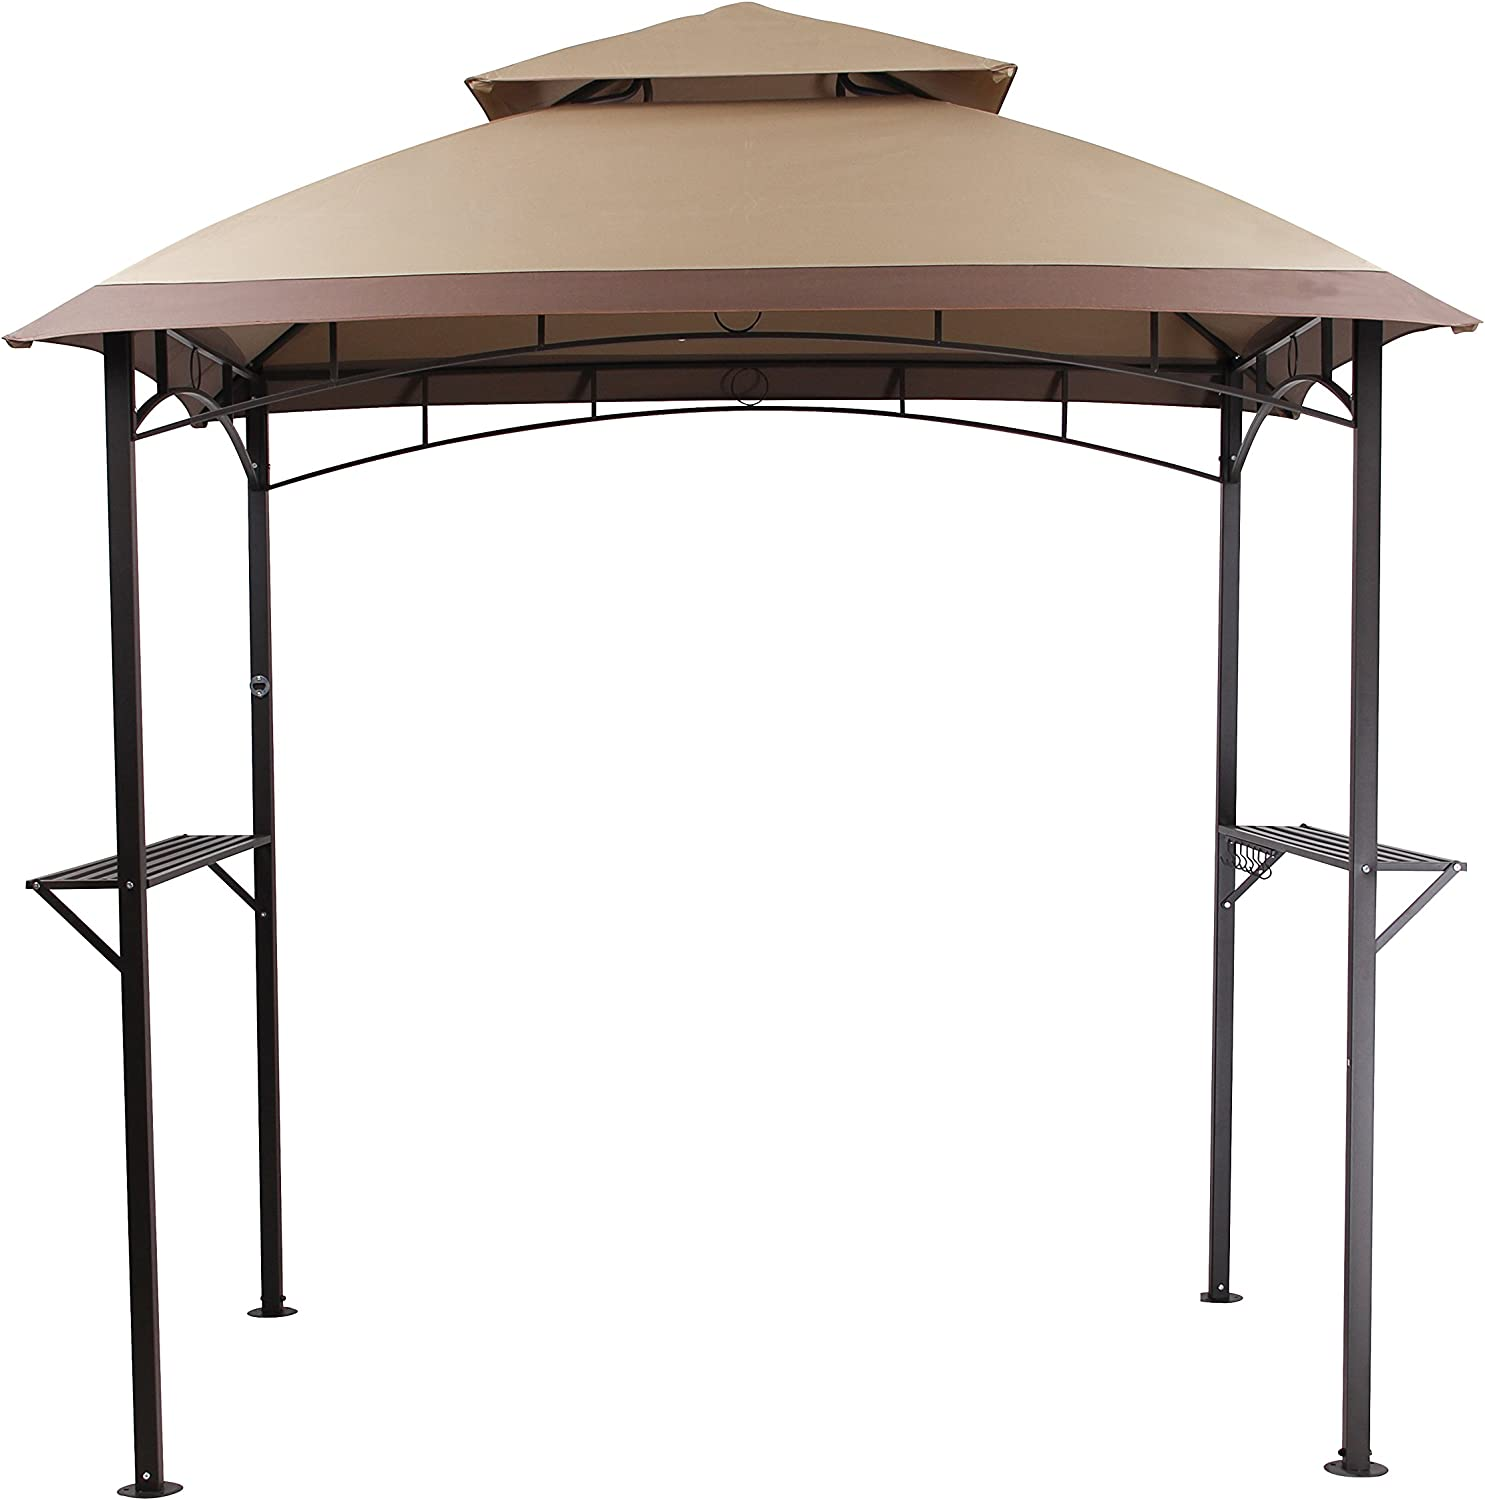 PHI VILLA Outdoor 8 x 5 BBQ Grill Gazebo Barbecue Shelter Tent with Double-Tier Soft Top Canopy and Frame